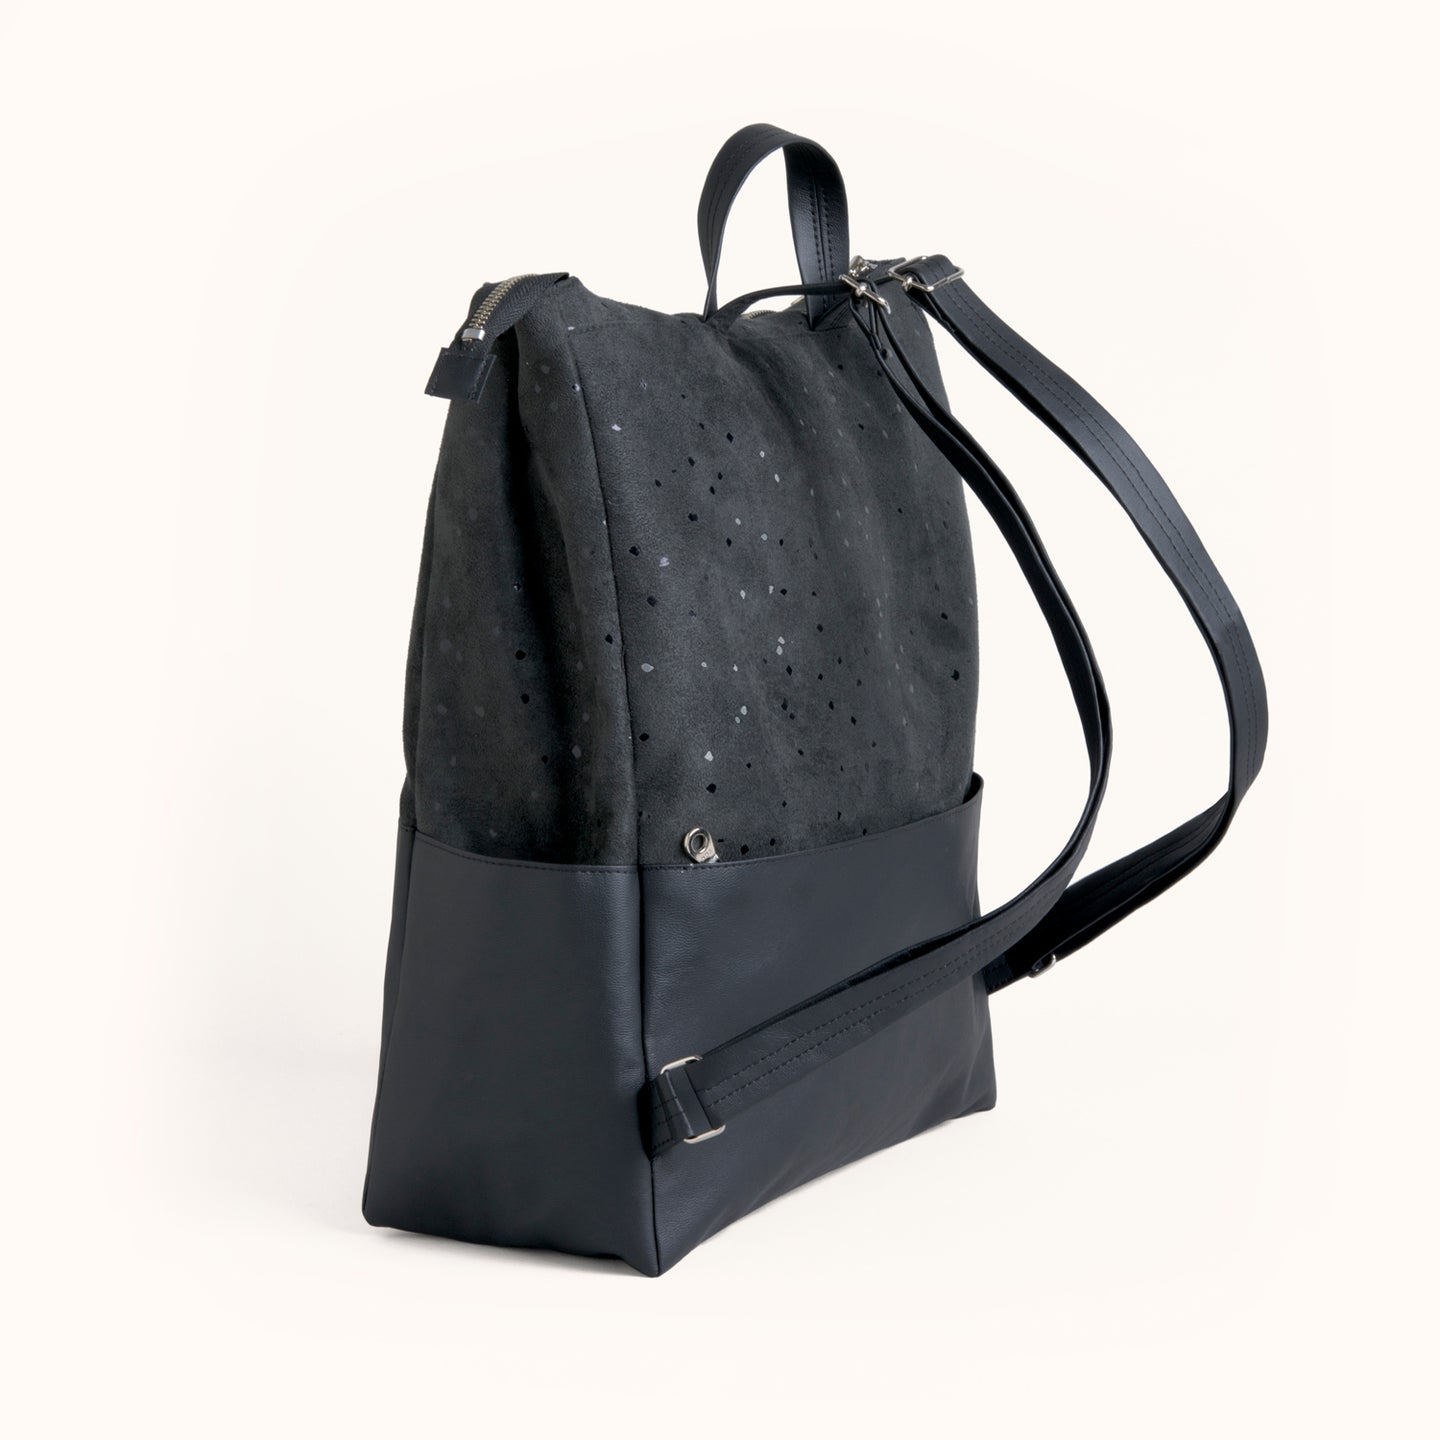 64d60d52a0 ... Everyday Commuter and Travel Metropolitan Backpack by Lee Coren ...